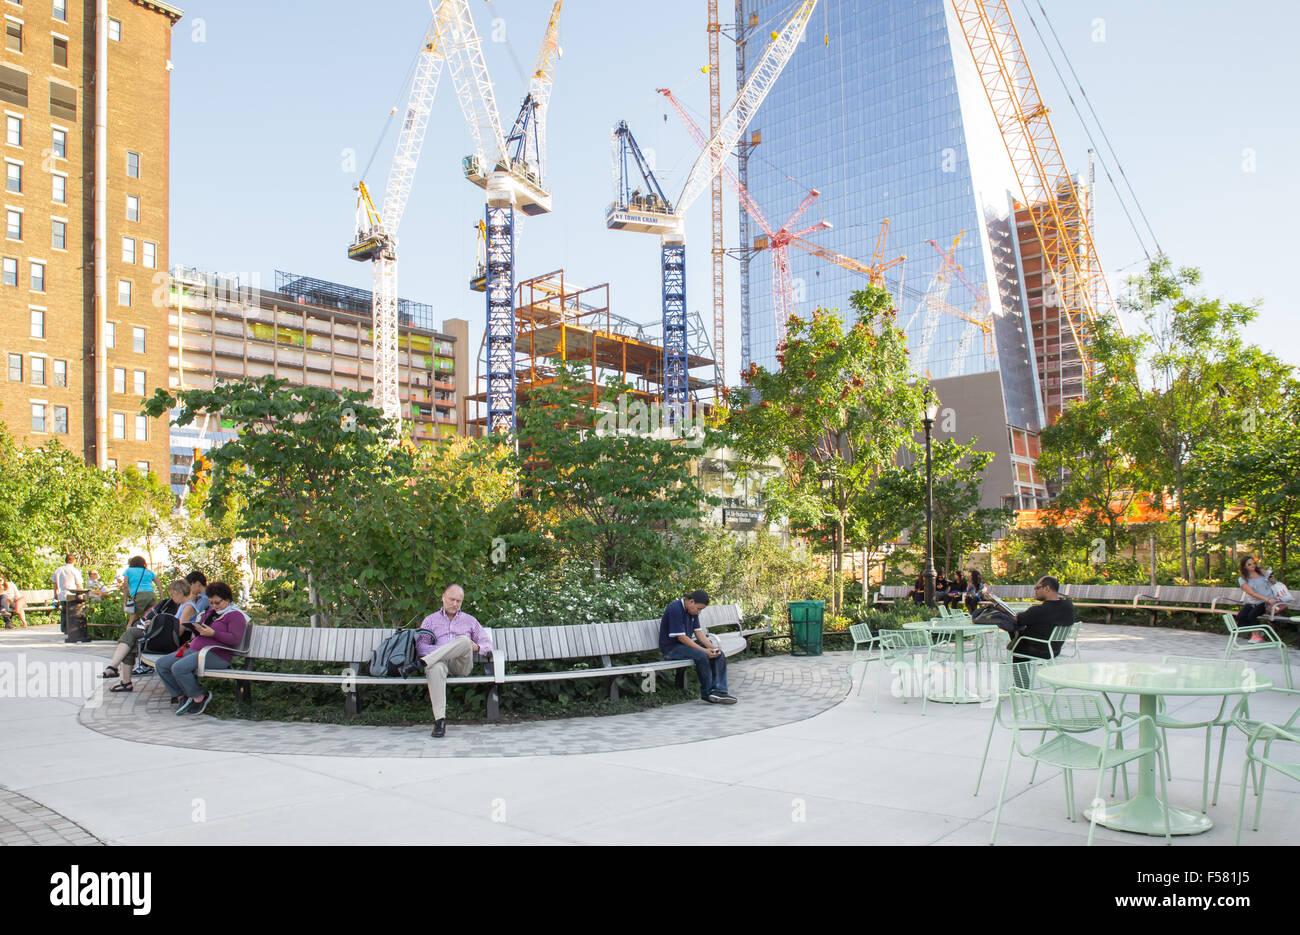 NEW YORK CITY - SEPTEMBER 14, 2015: View of newly developed Hudson Yards Park in Manhattan with people visible. - Stock Image